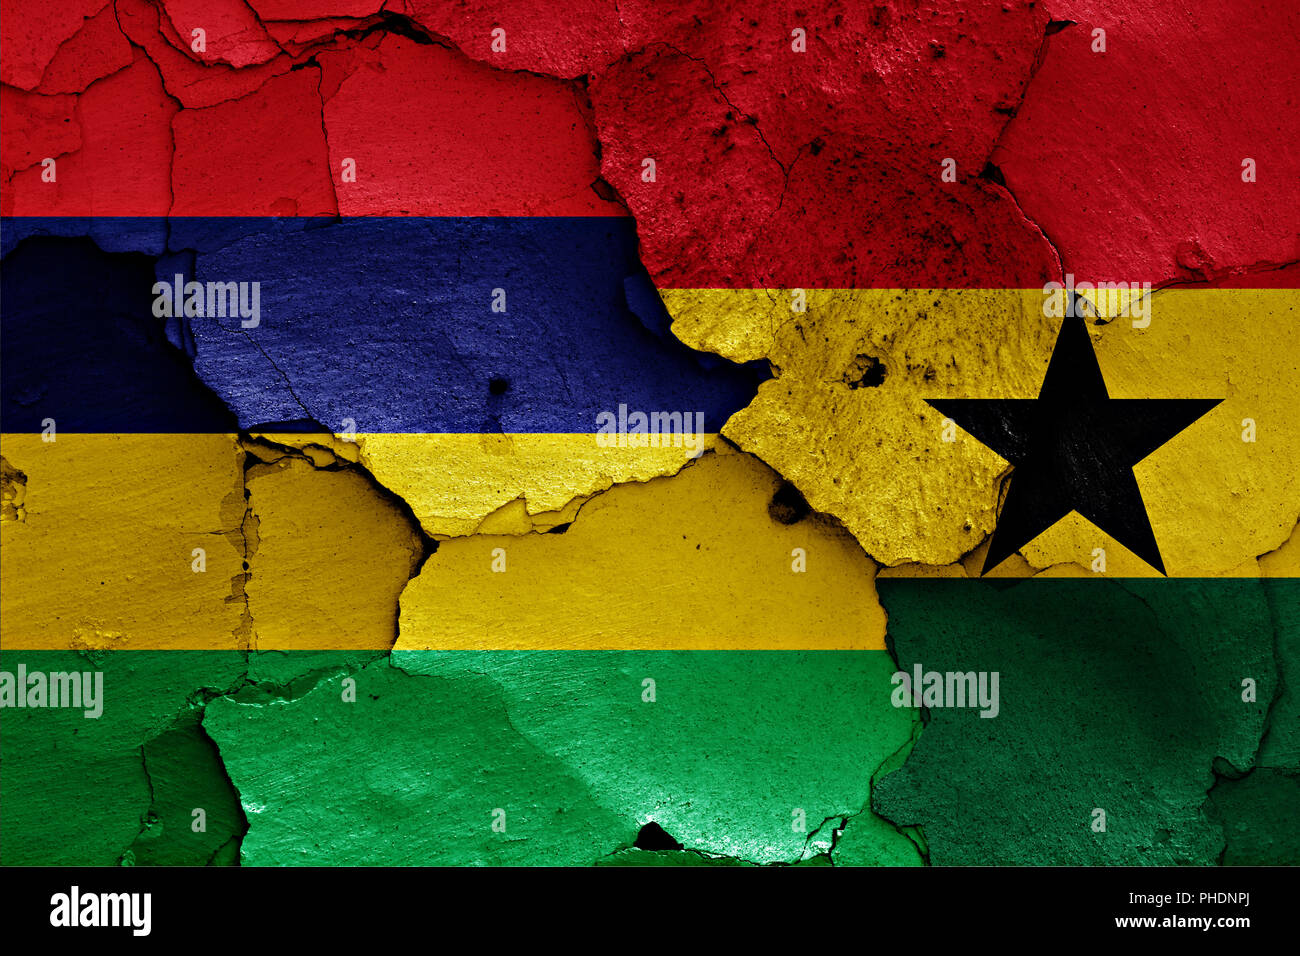 flags of Mauritius and Ghana painted on cracked wall - Stock Image